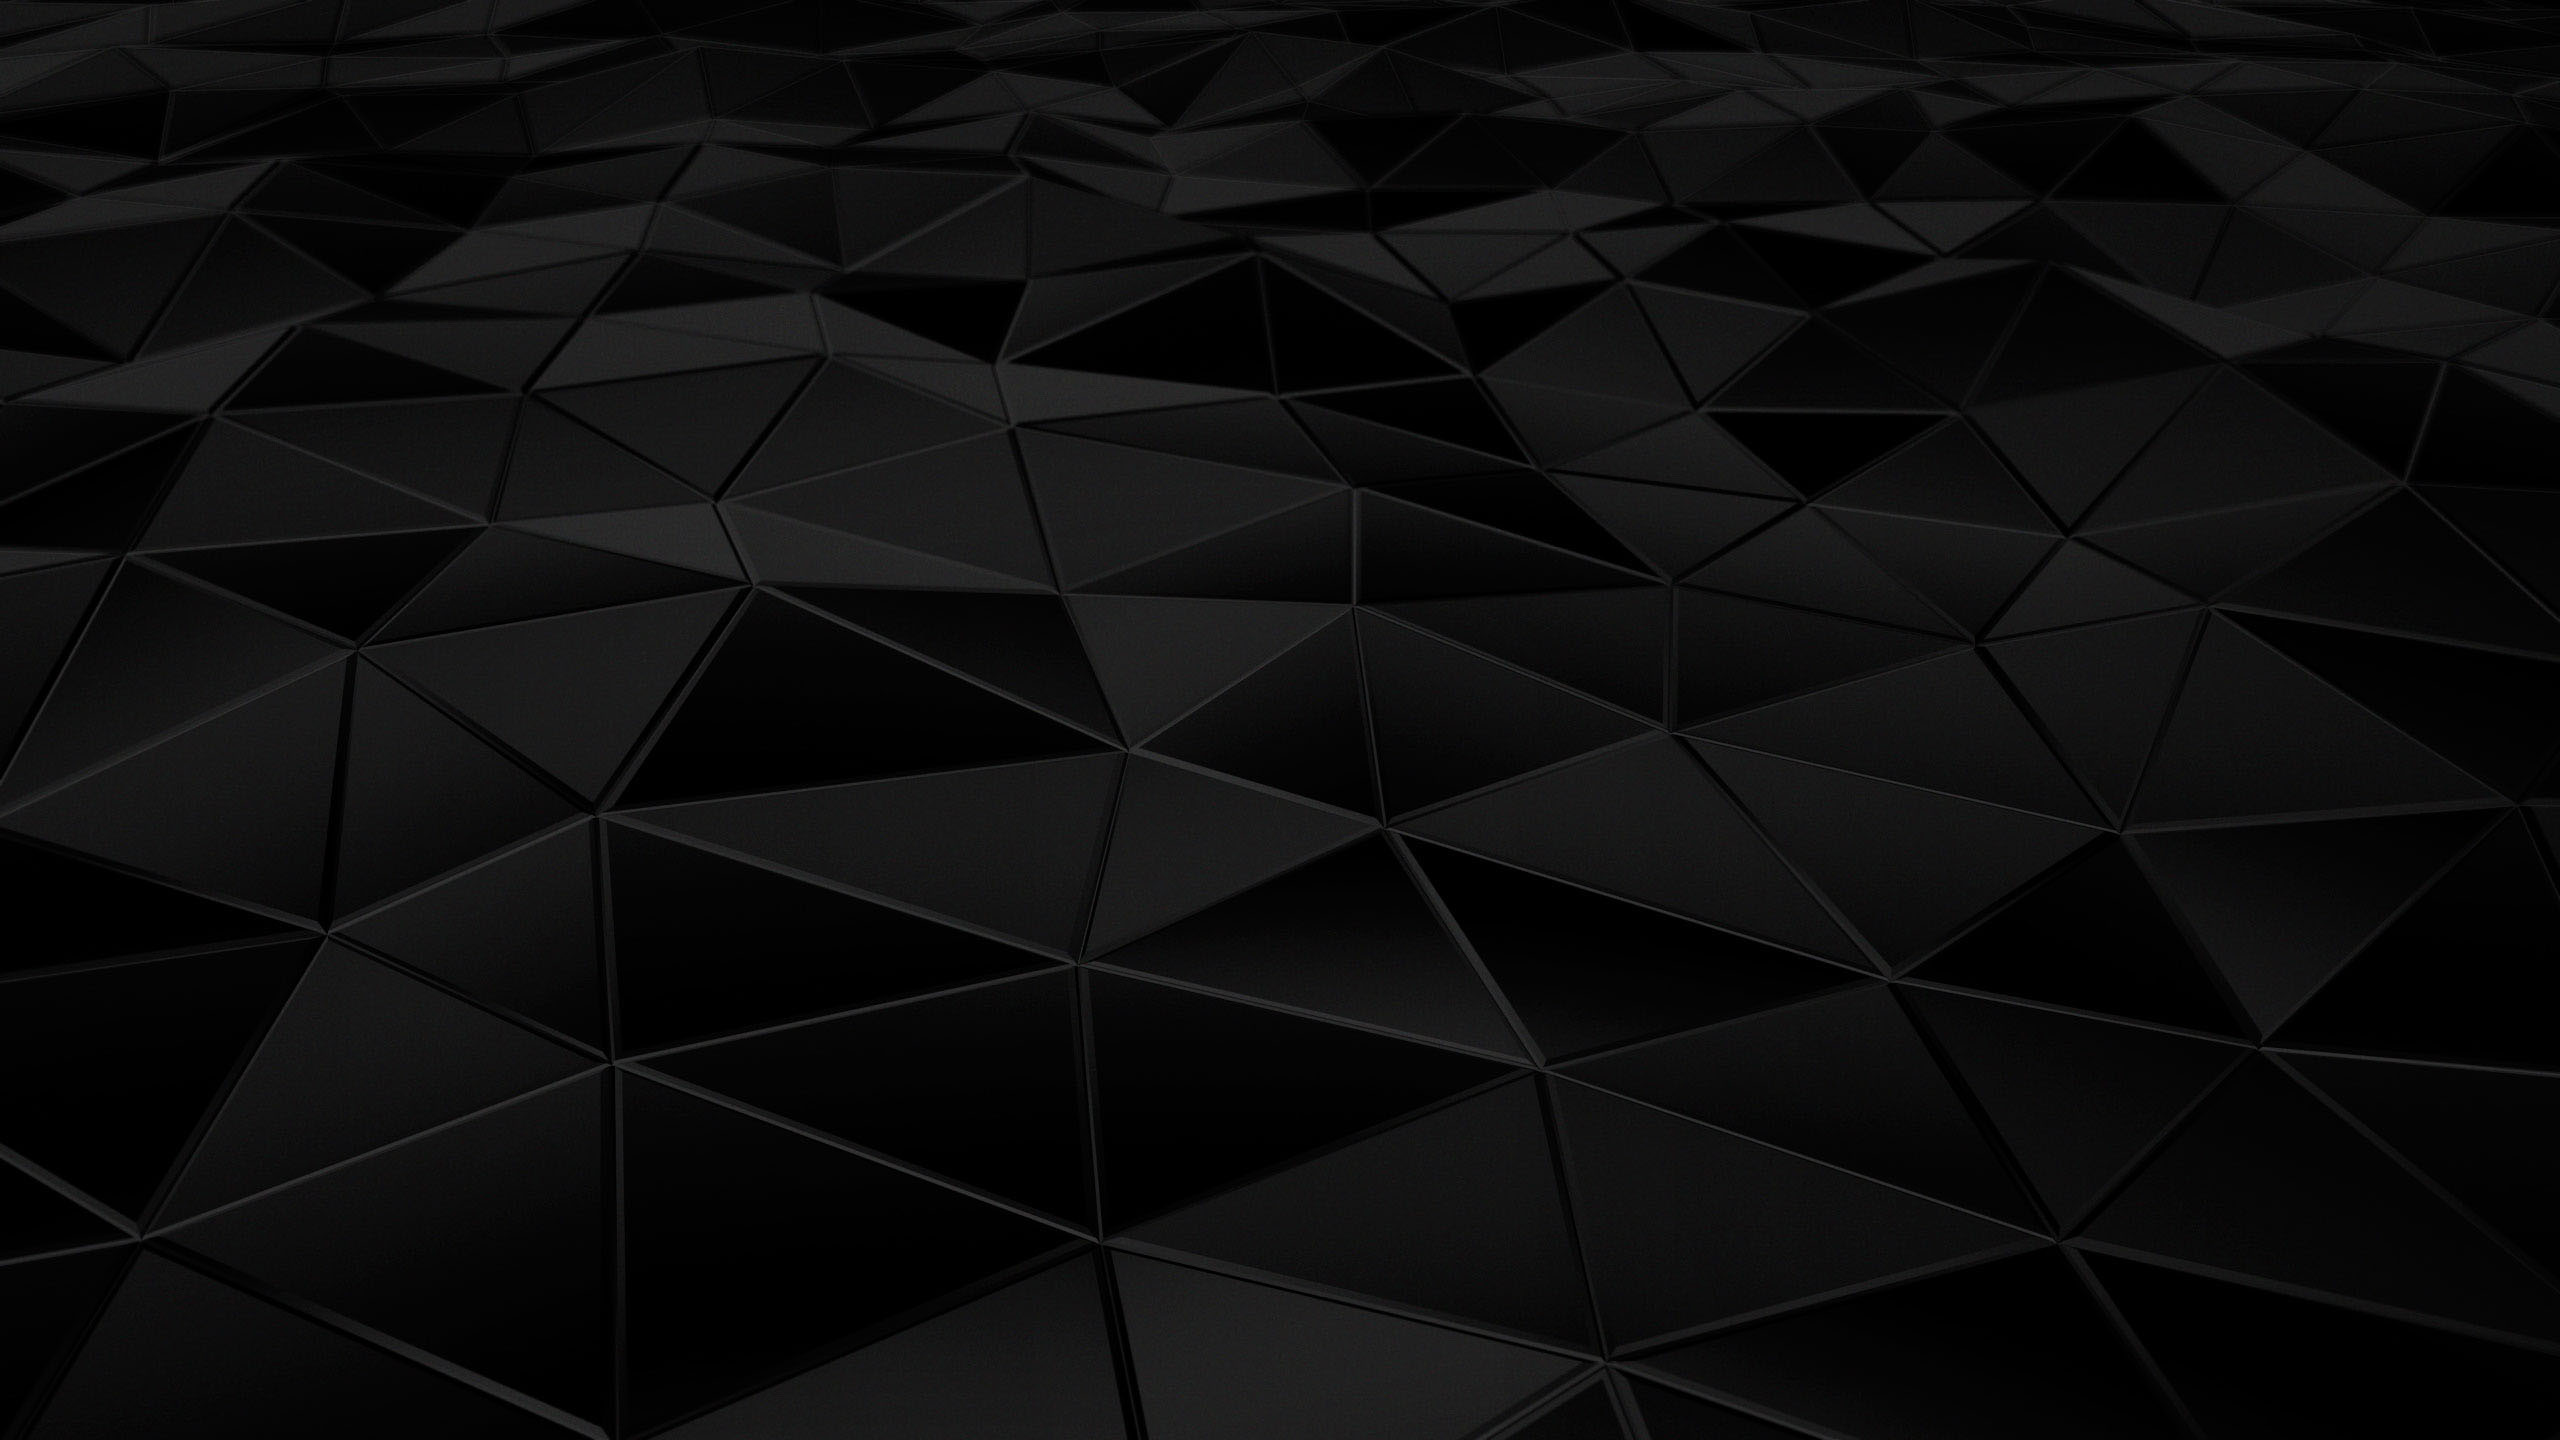 Black Abstract Wallpapers Full Hd